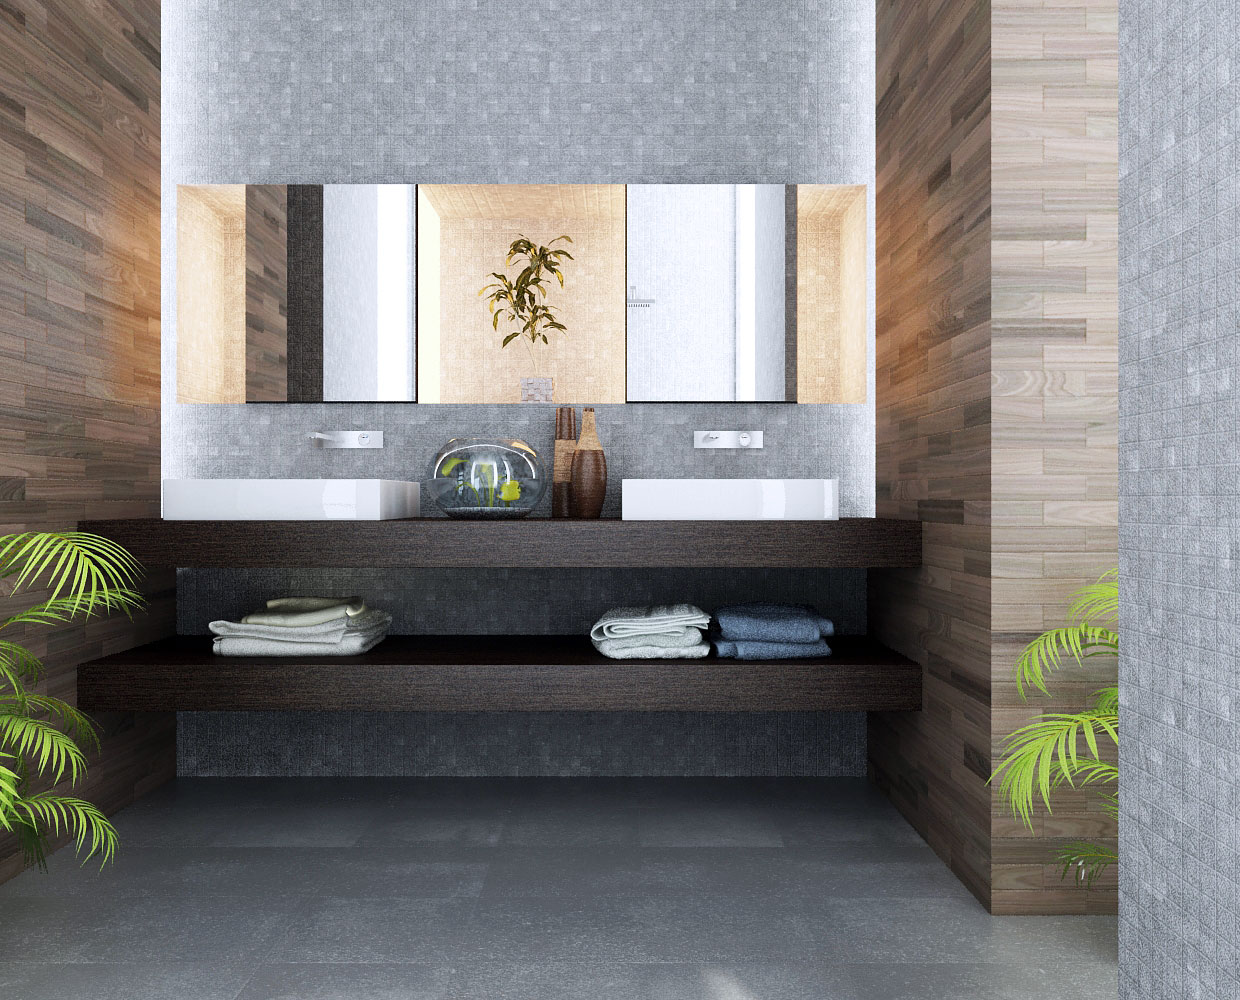 VIEW IN GALLERY Double Sink Bathroom Vanity Cabinets   Modern Design